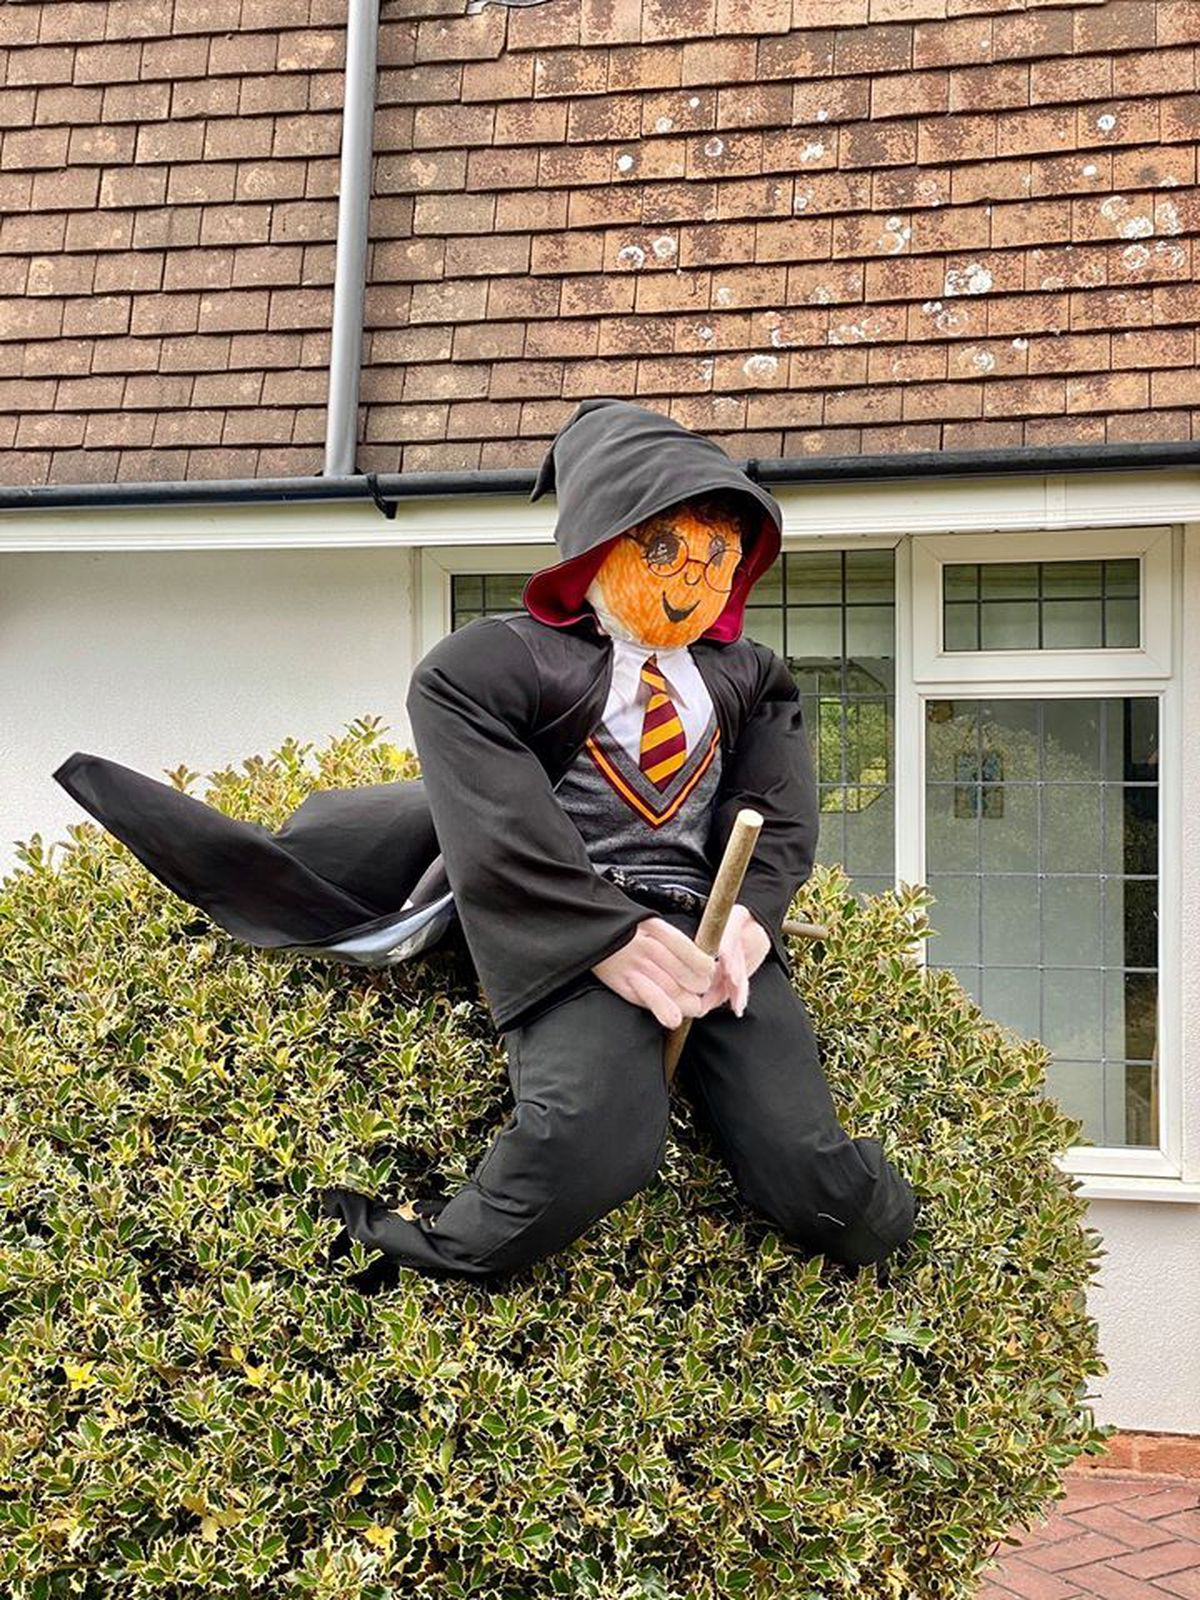 Residents of Codsall and Bilbrook have created more than 60 scarecrows as part of a competition for charity